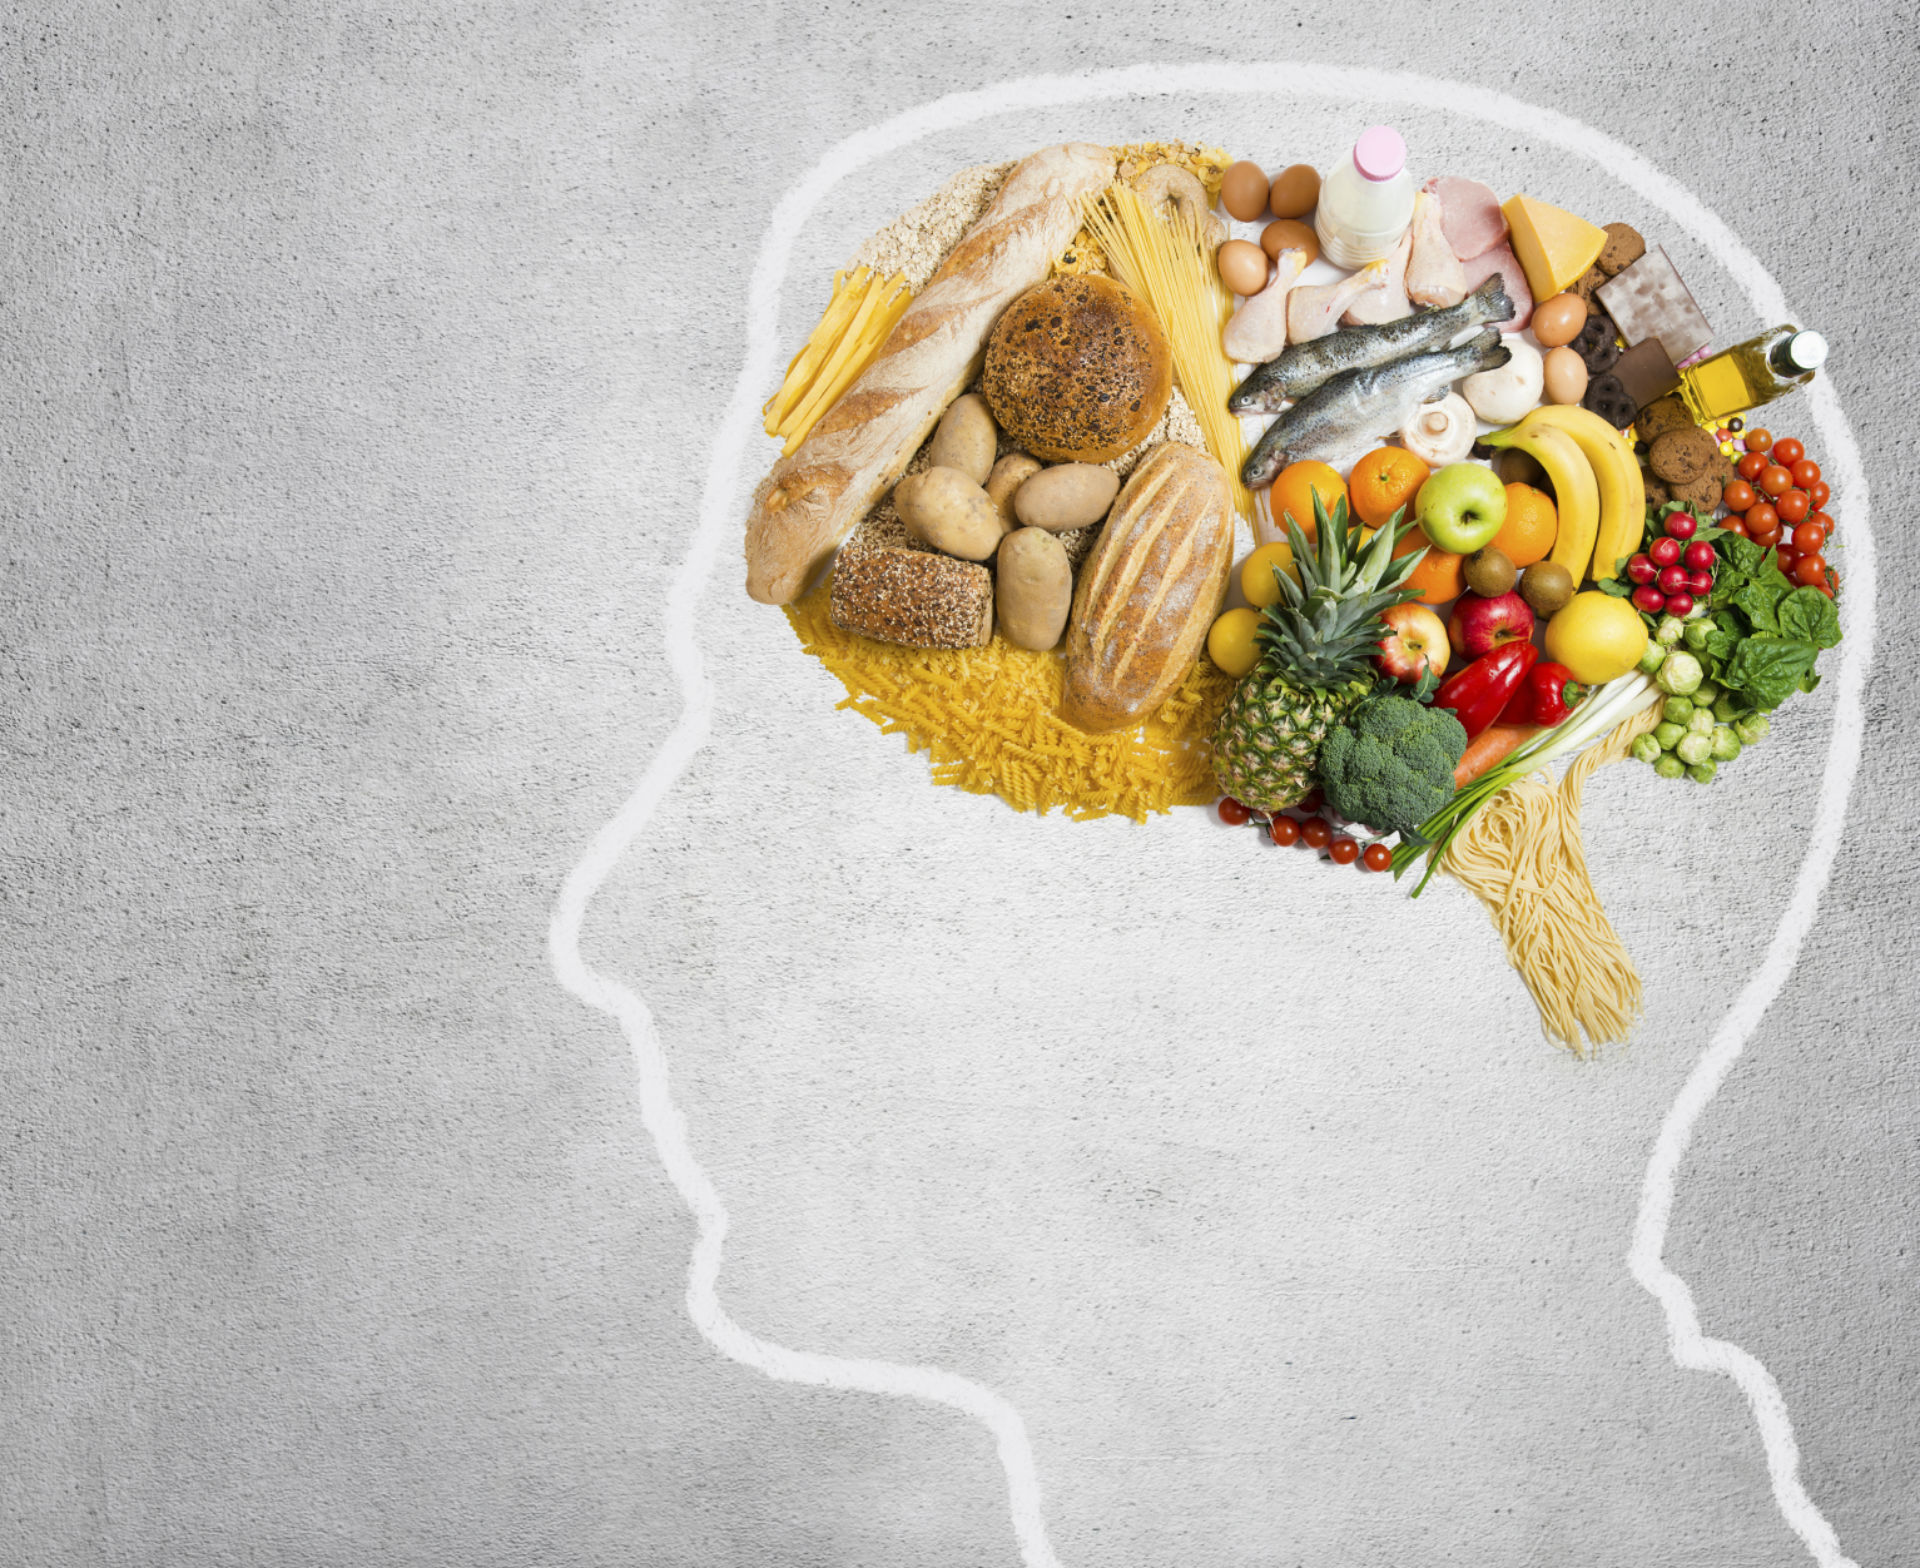 6 Brain Foods to Keep You Going at Work